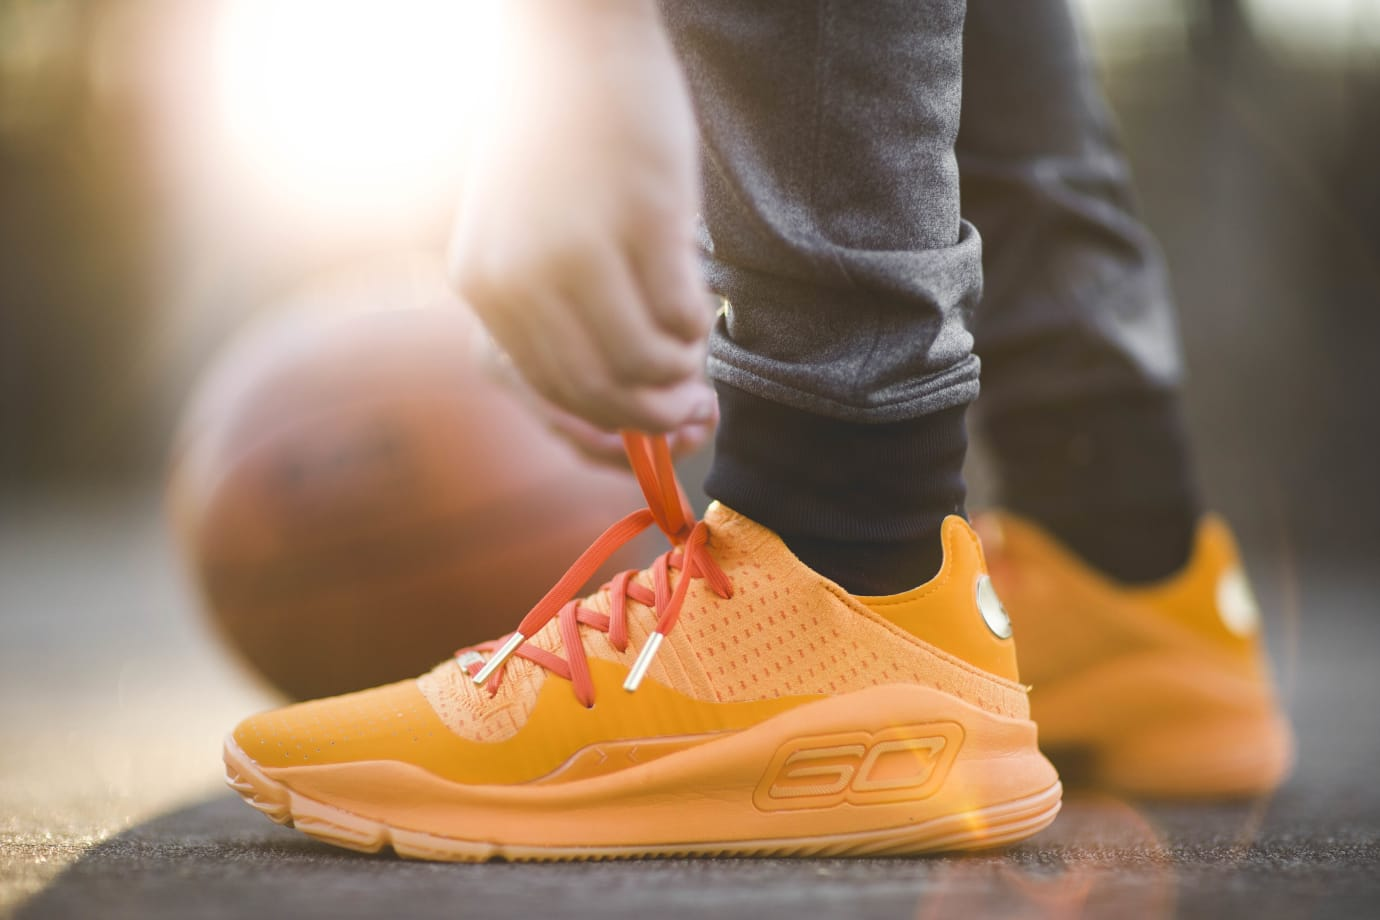 Under Armour Curry 4 Low 'Orange'